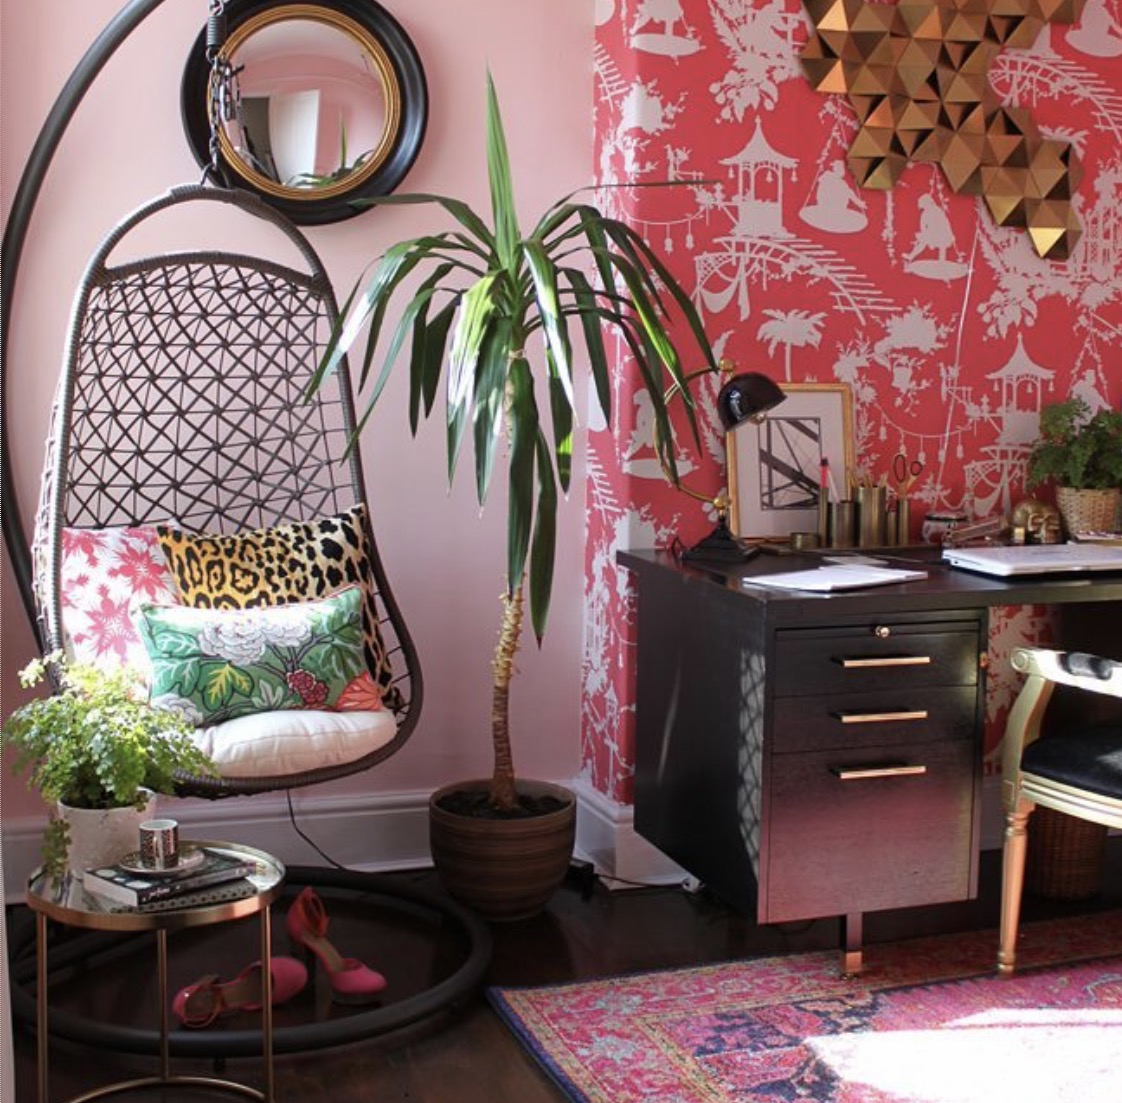 Pink rules in this room at the home of Kimberley Duran of  Swoonworthy  blog.    Mixing the pinks looks fantastic and seriously effective.